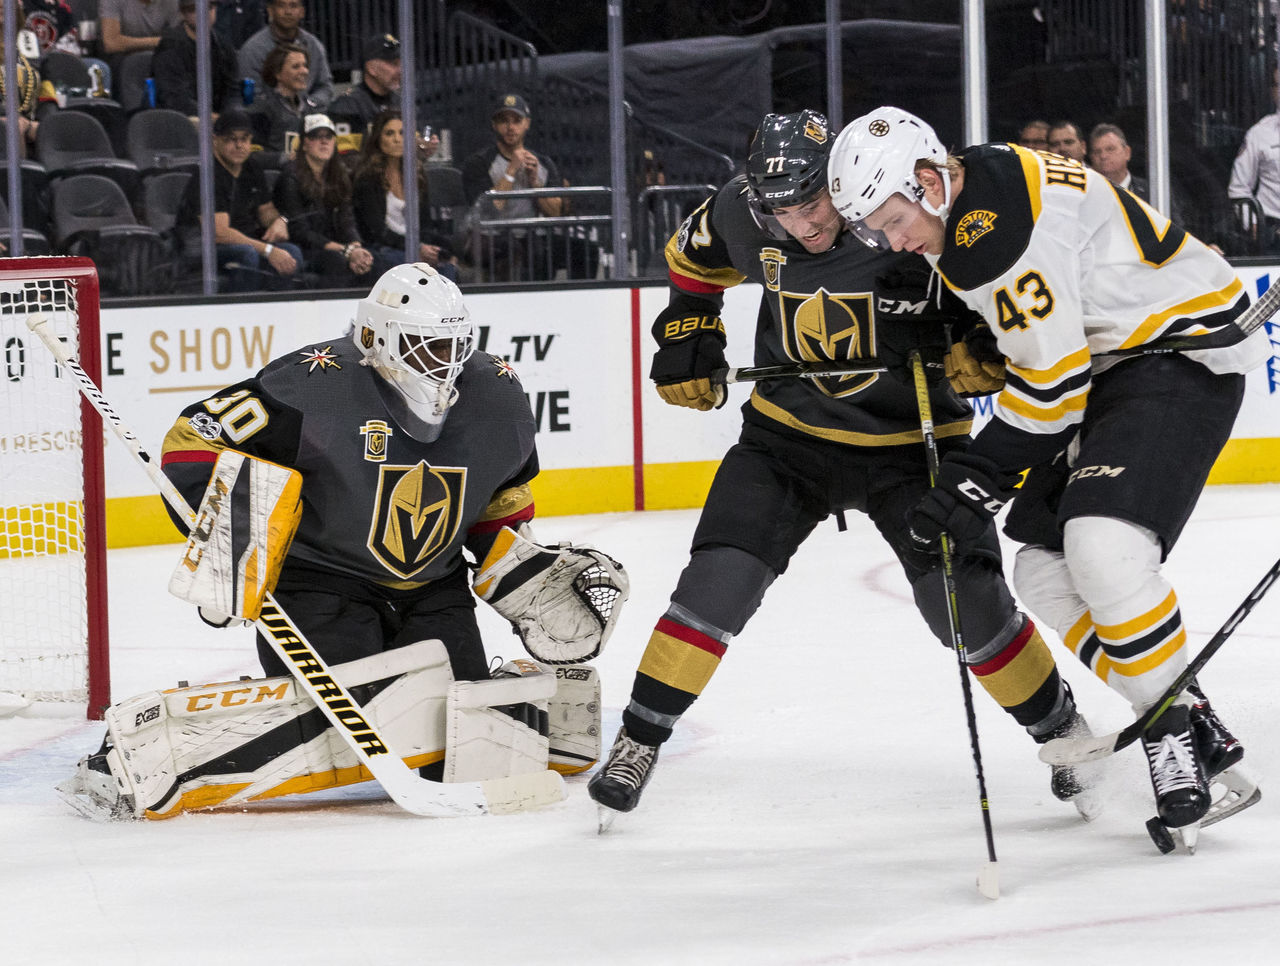 Cropped 2017 10 16t012346z 1392330532 nocid rtrmadp 3 nhl boston bruins at vegas golden knights